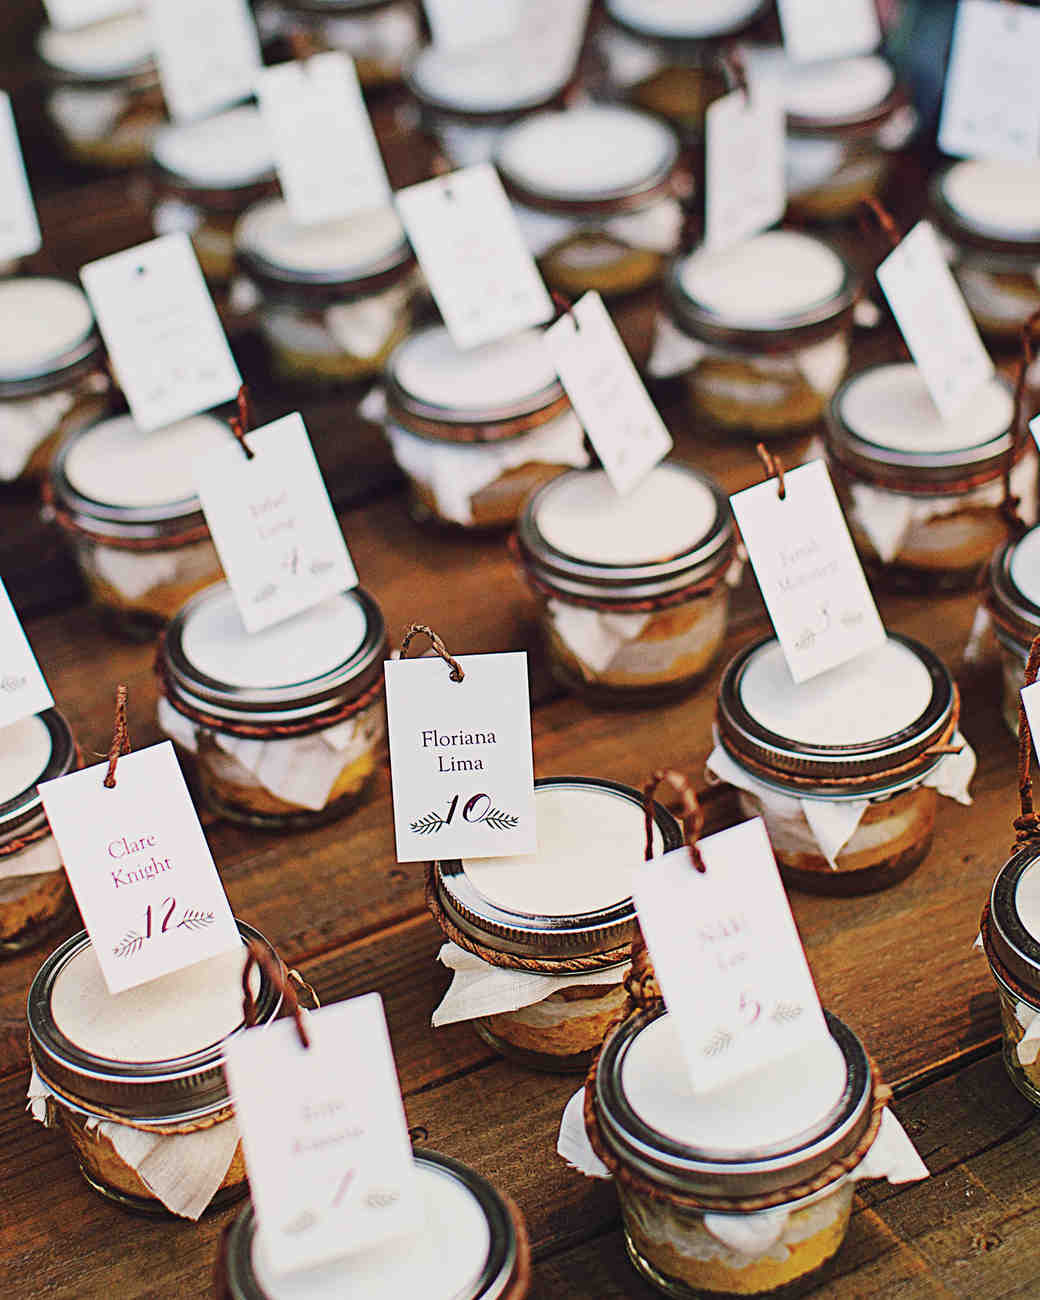 Wedding Favors: 24 Unique Winter Wedding Favor Ideas